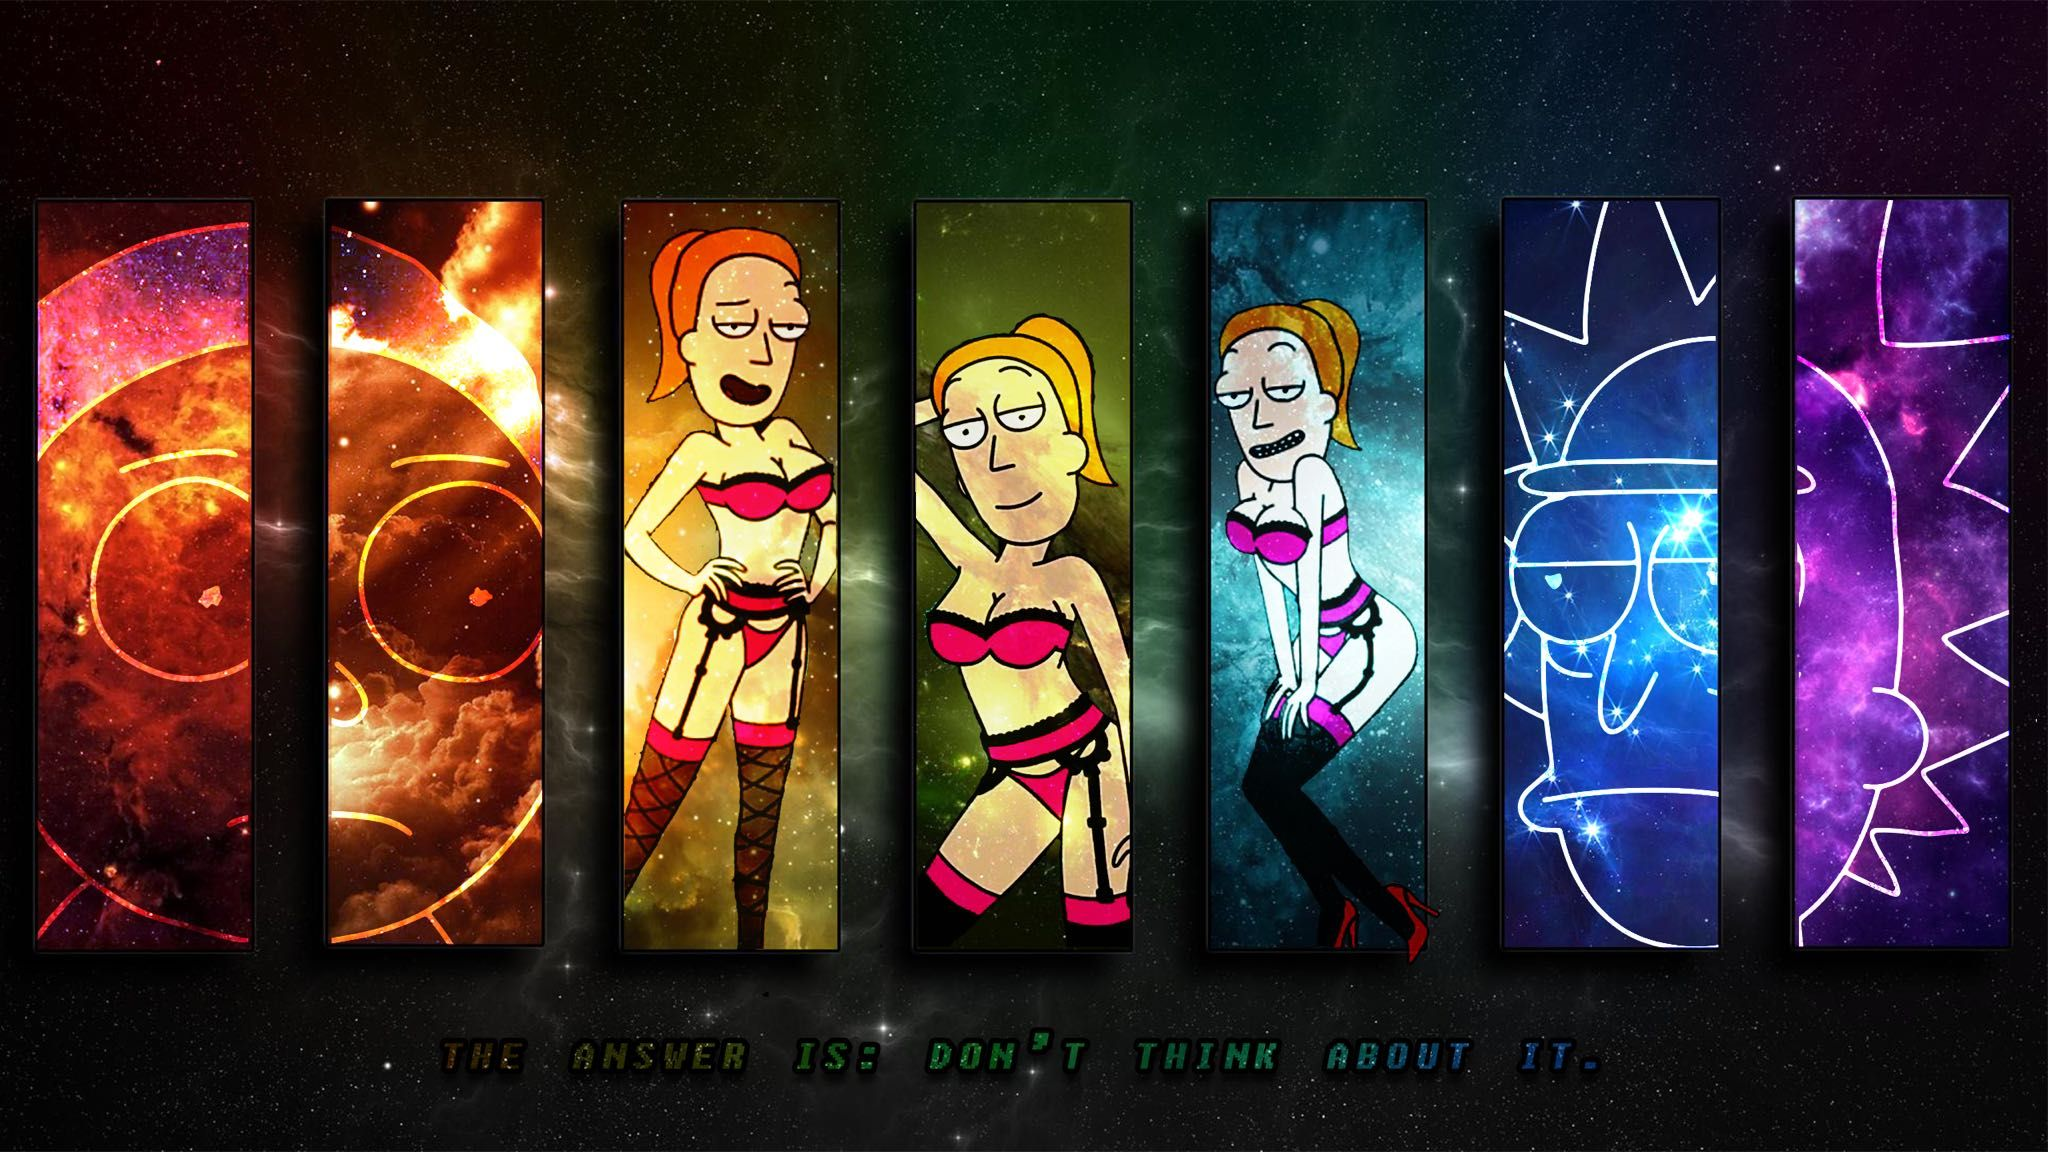 Gravity Falls Wallpaper Full Hd Rick And Morty Hd Wallpapers And Backgrounds 2048 215 1152